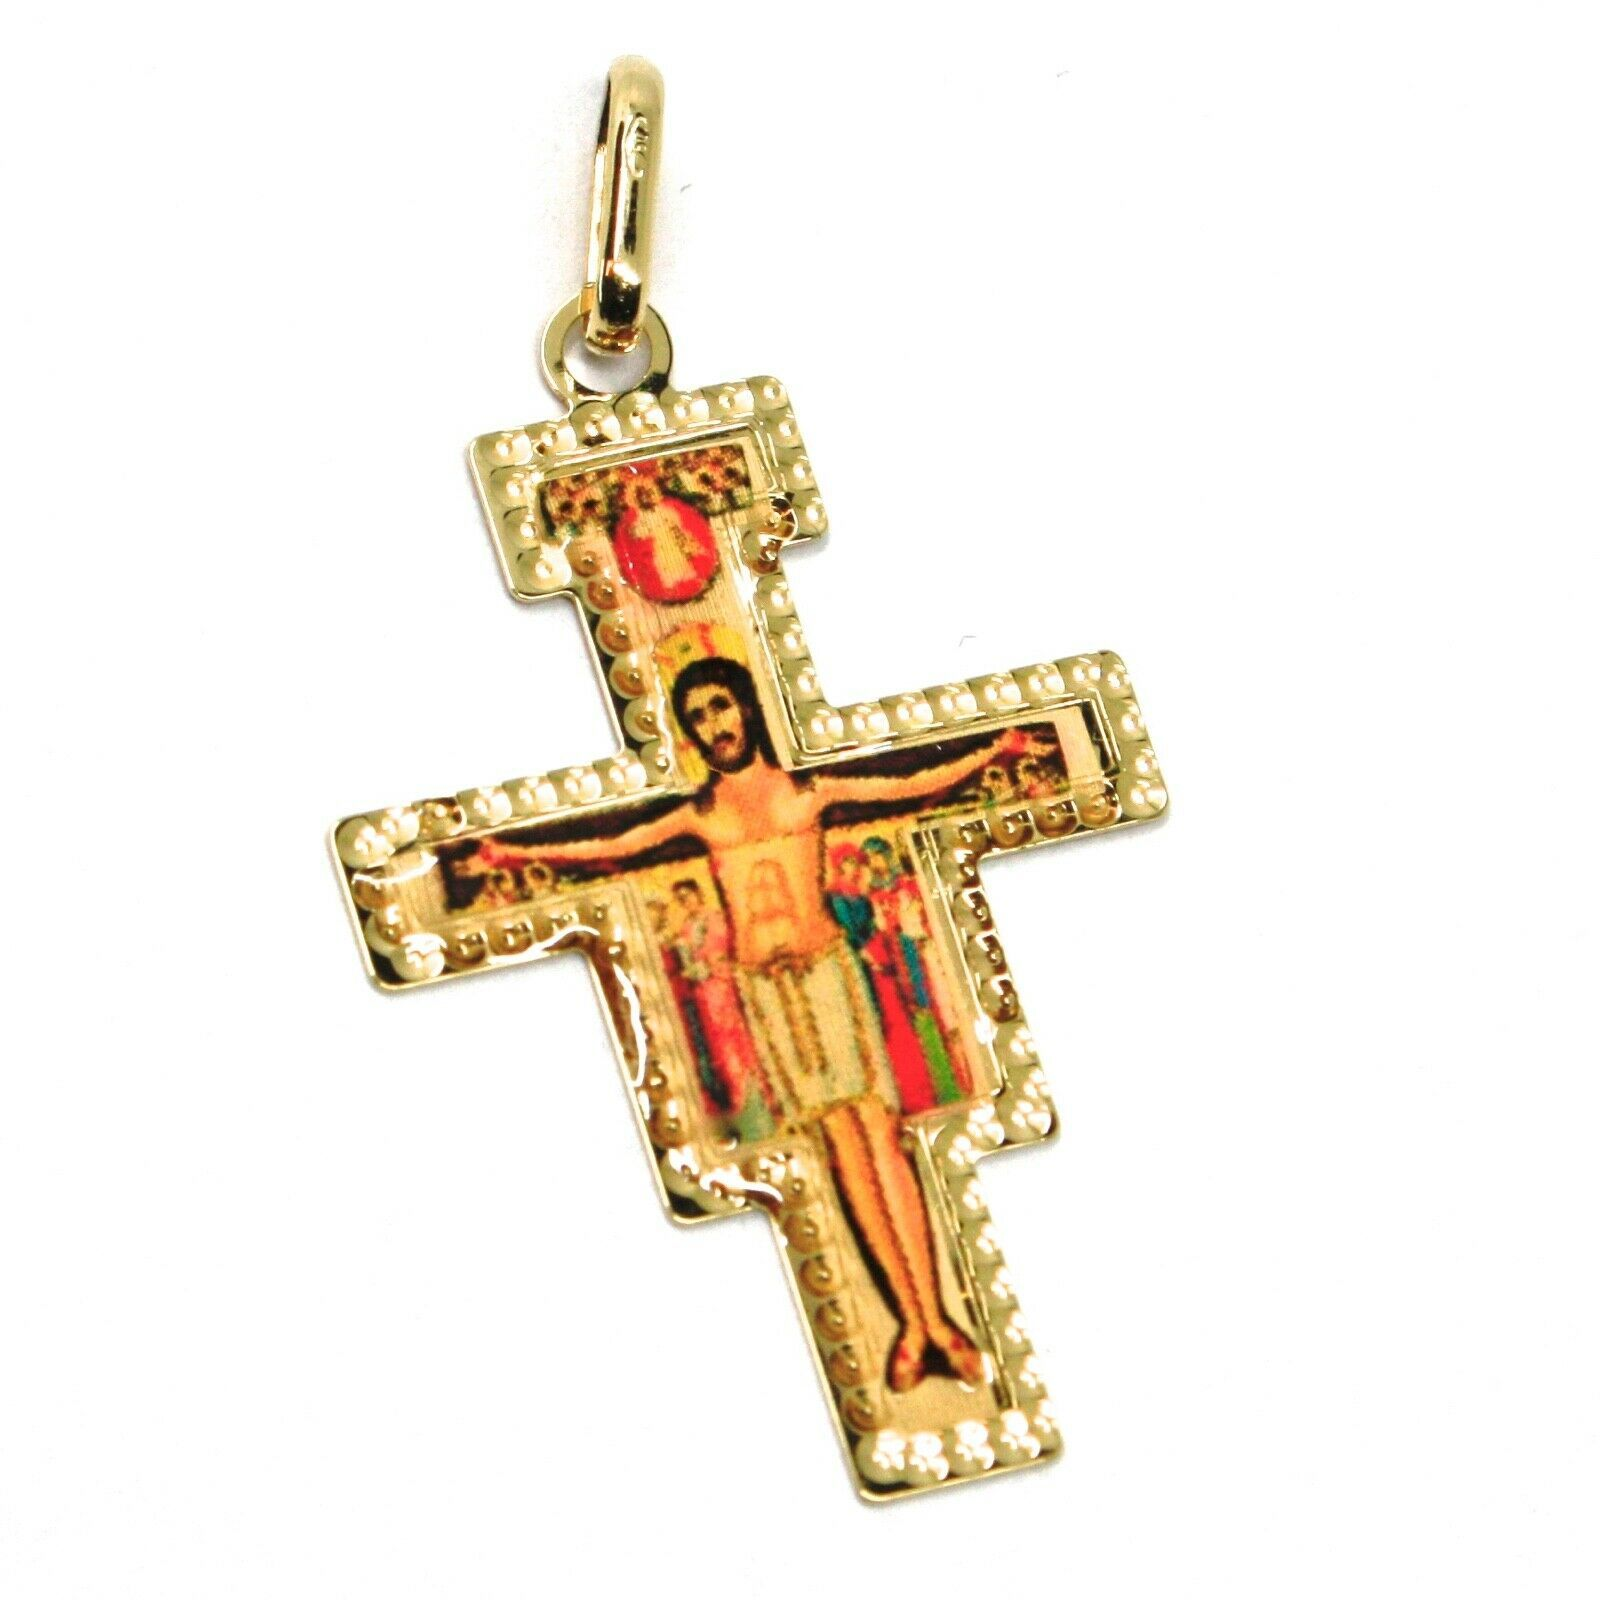 18K YELLOW GOLD FLAT SAINT DAMIANO CROSS PENDANT WITH WORKED FRAME & ENAMEL